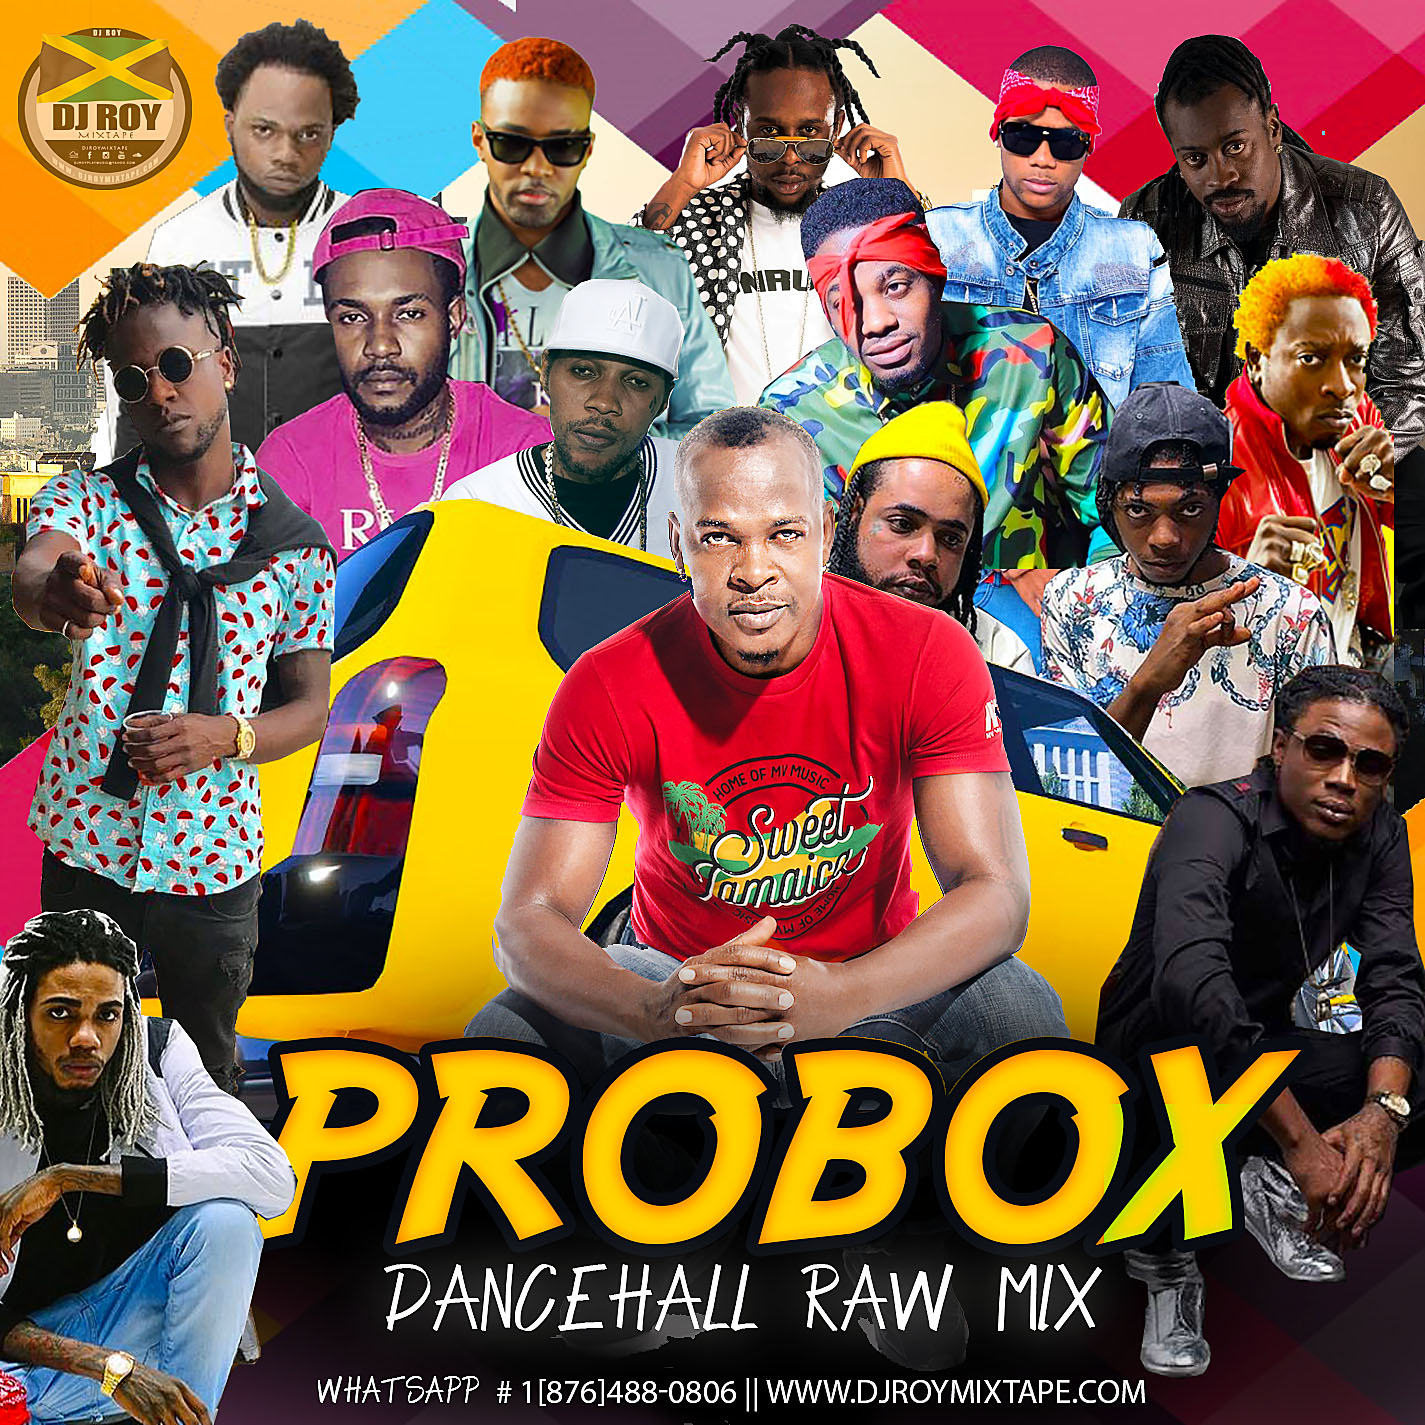 DJROYMIXTAPE : DJ ROY PROBOX DANCEHALL MIX 2019